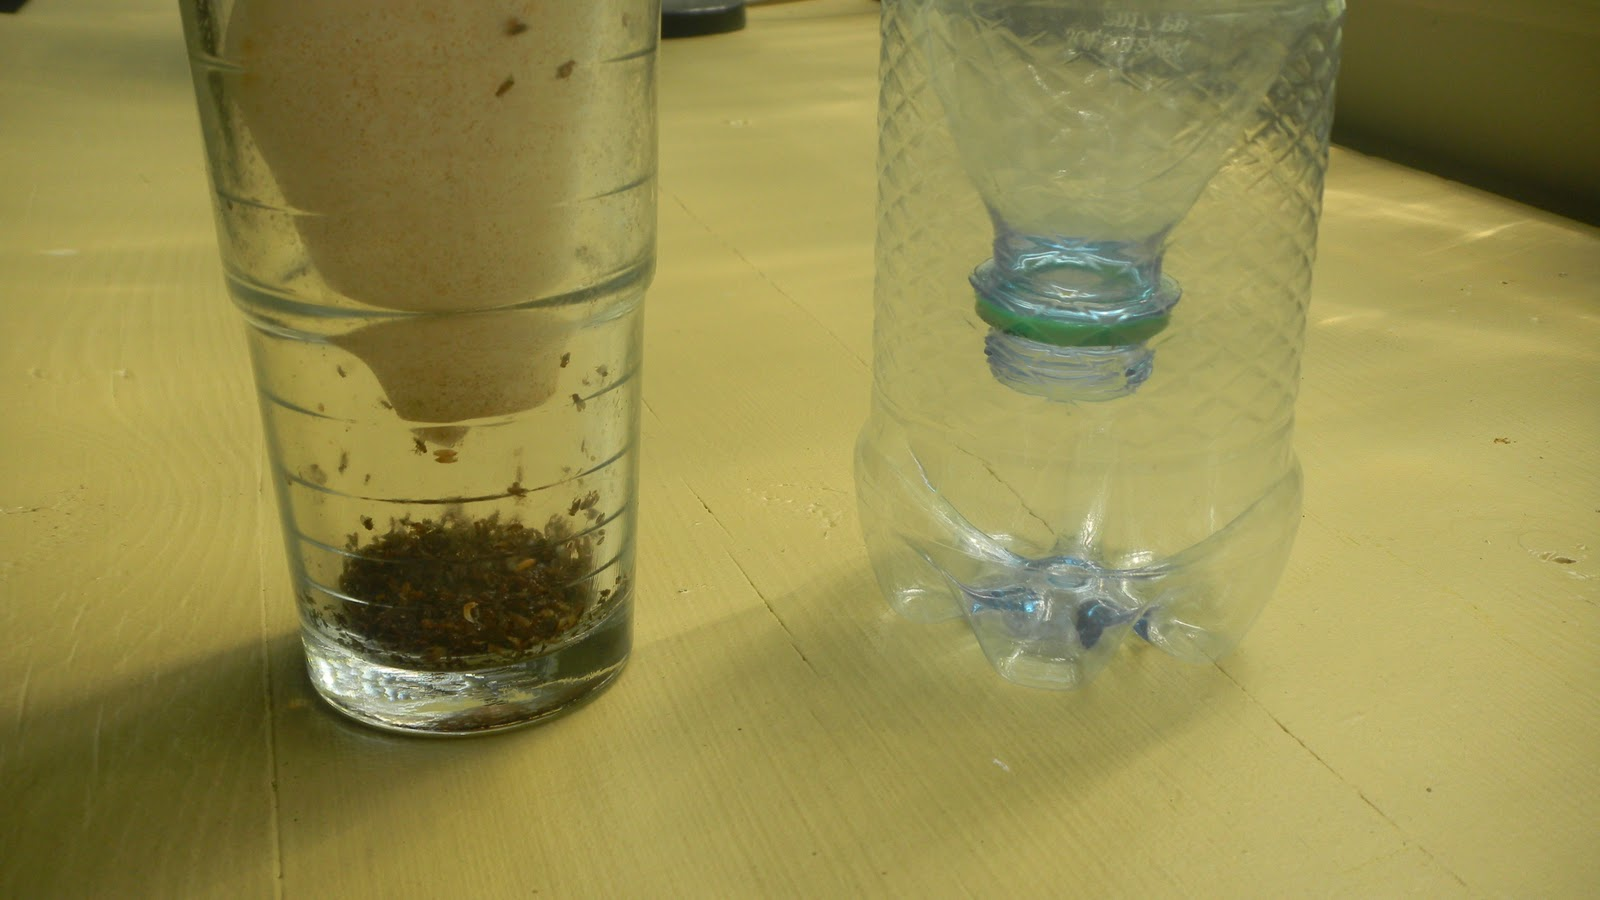 Green Roof Growers: Upgraded Fruit Fly Trap